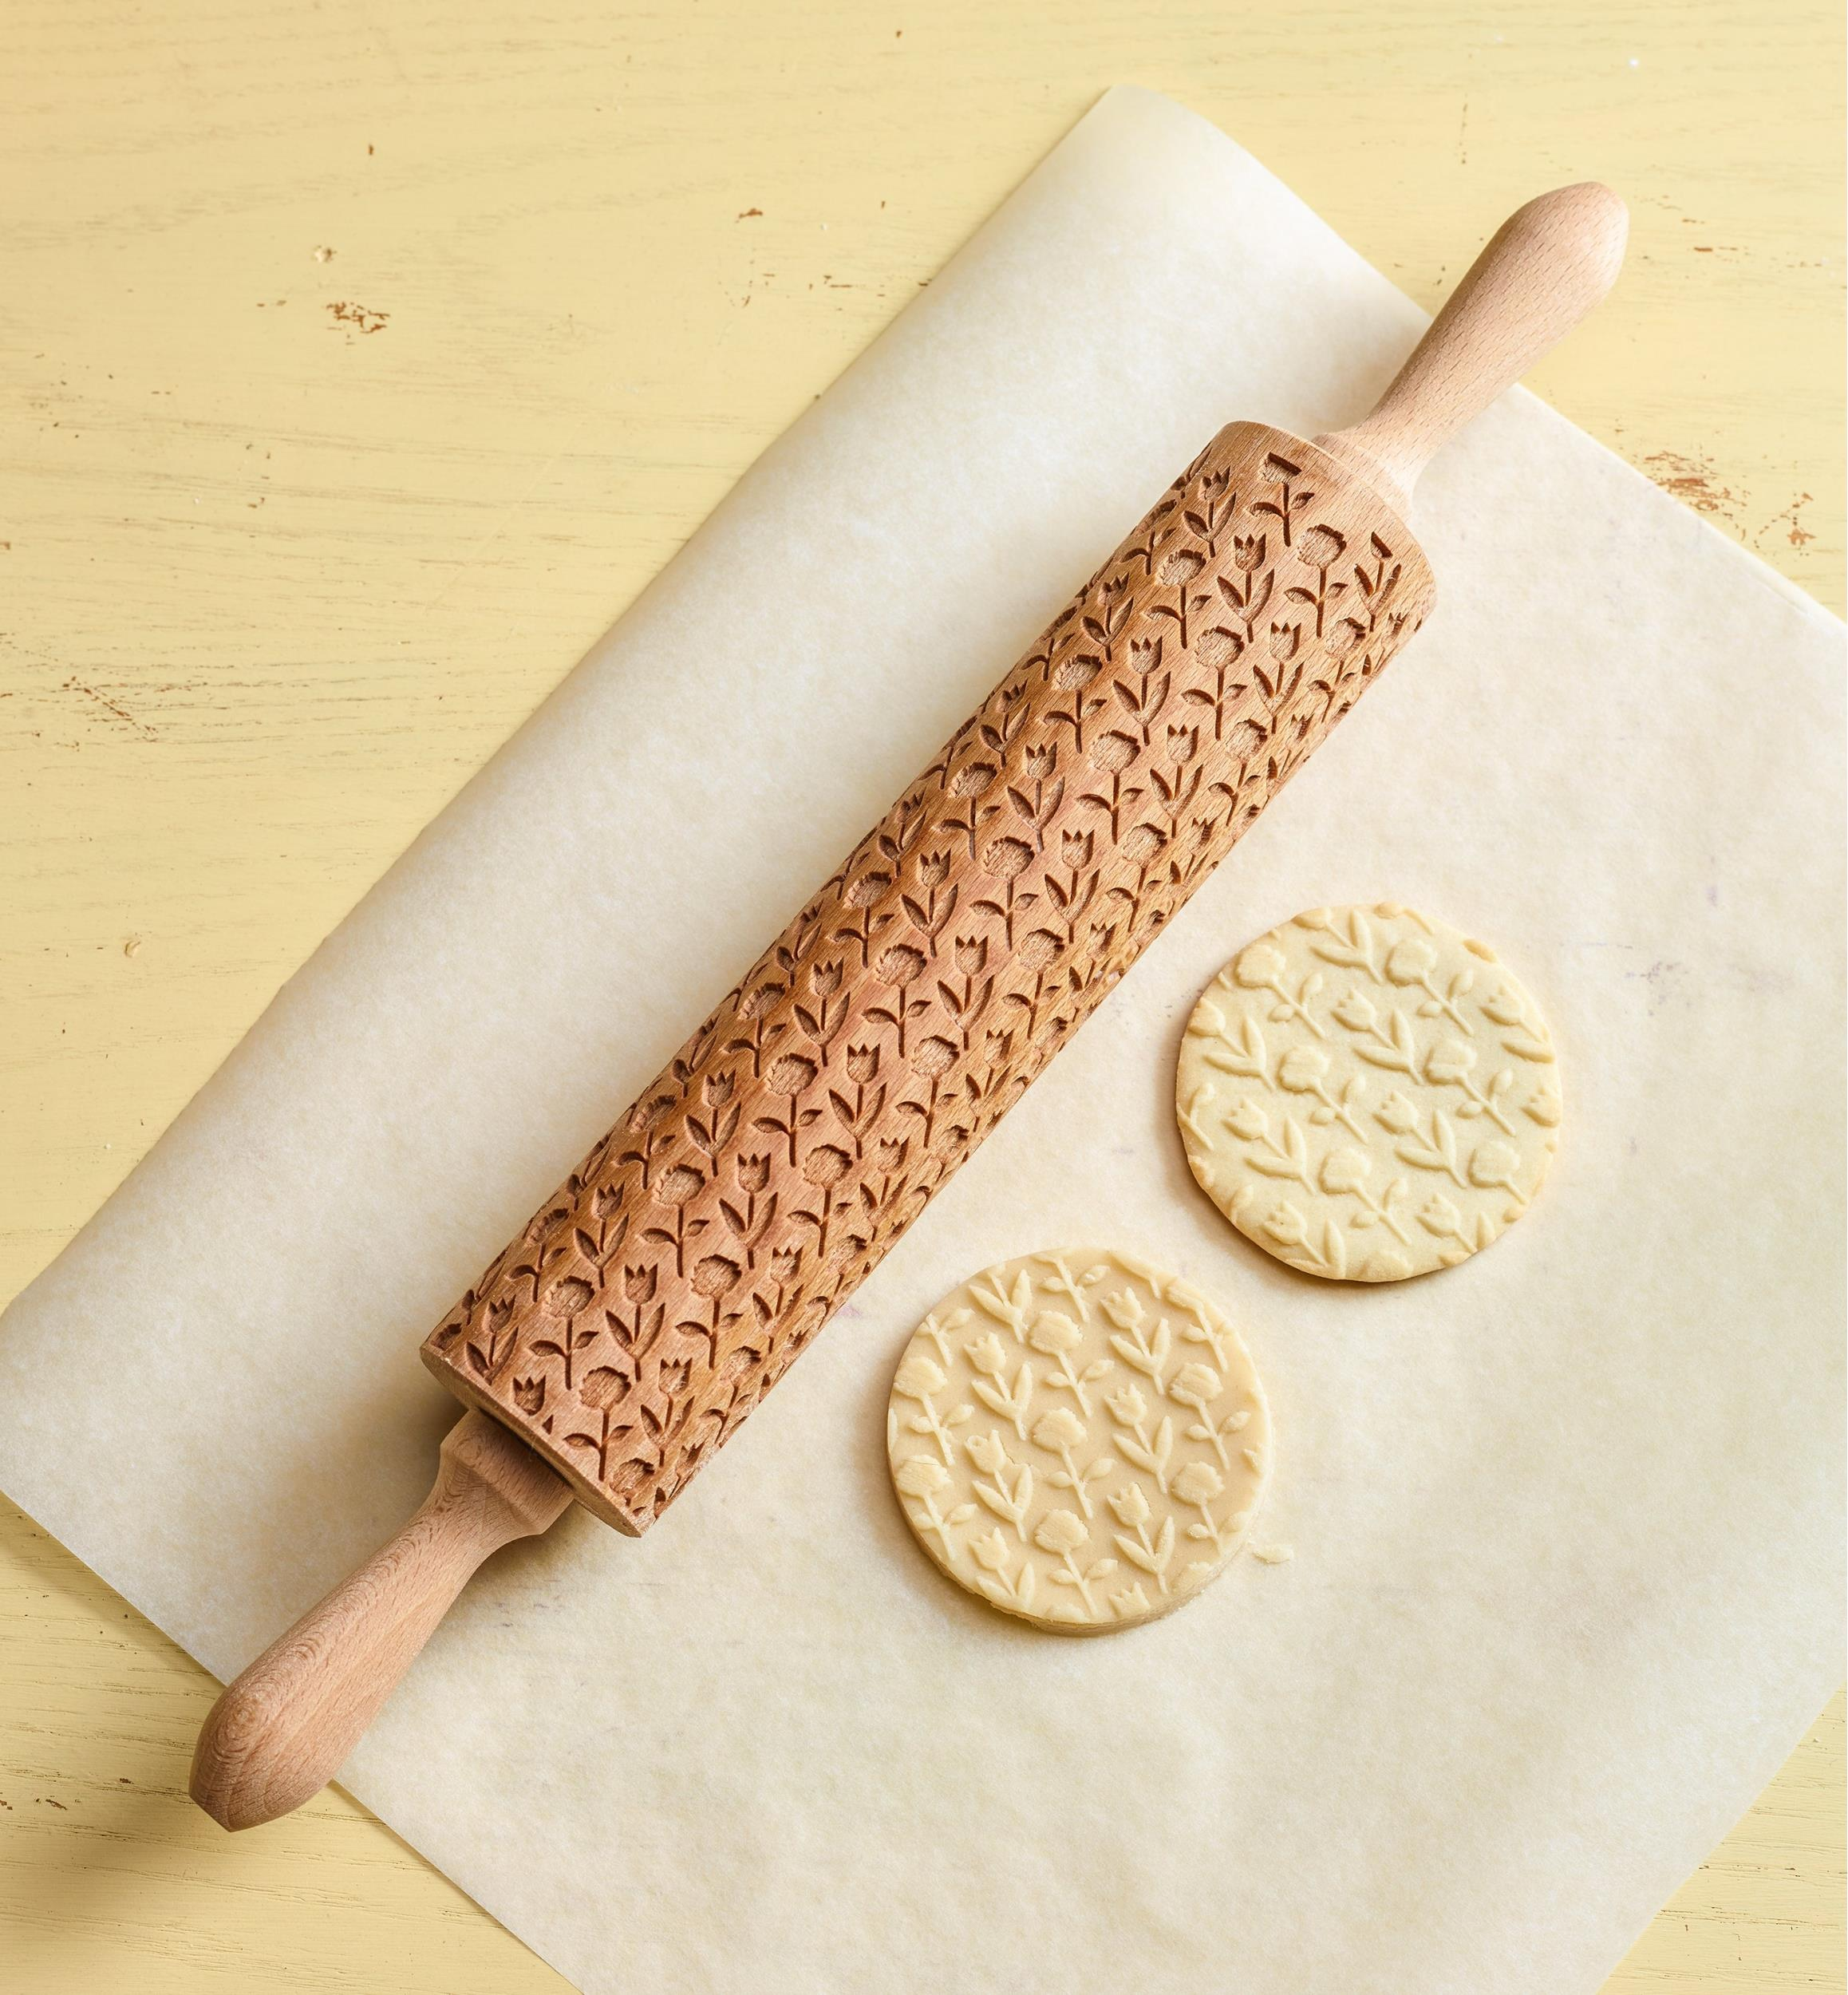 DRAGONFLY Laser Engraved Rolling-pin Decorating Roller Embossing Rollingpin Engraved rolling pin for Cookies